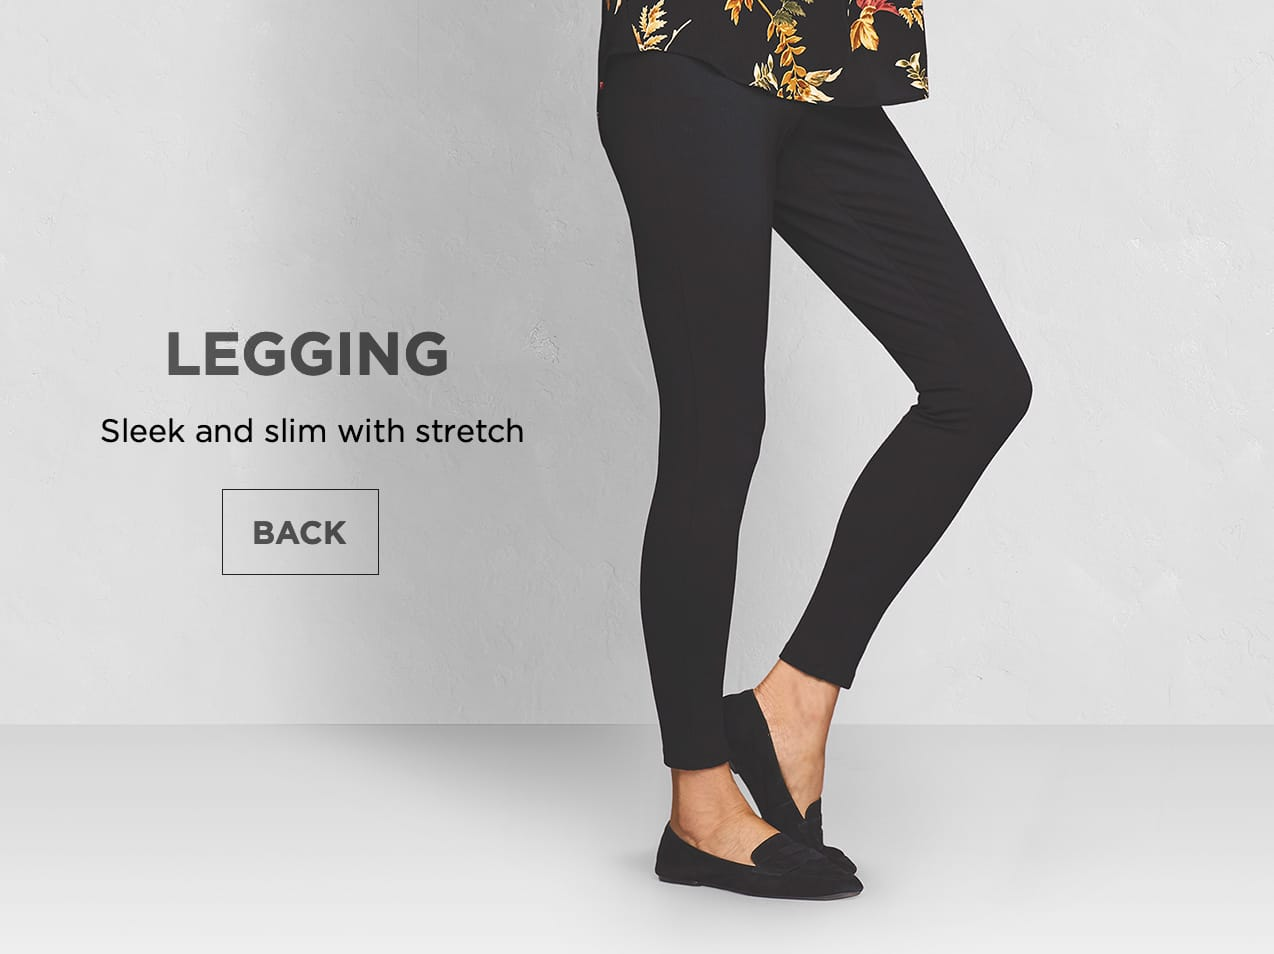 Legging: Sleek and slim with stretch.